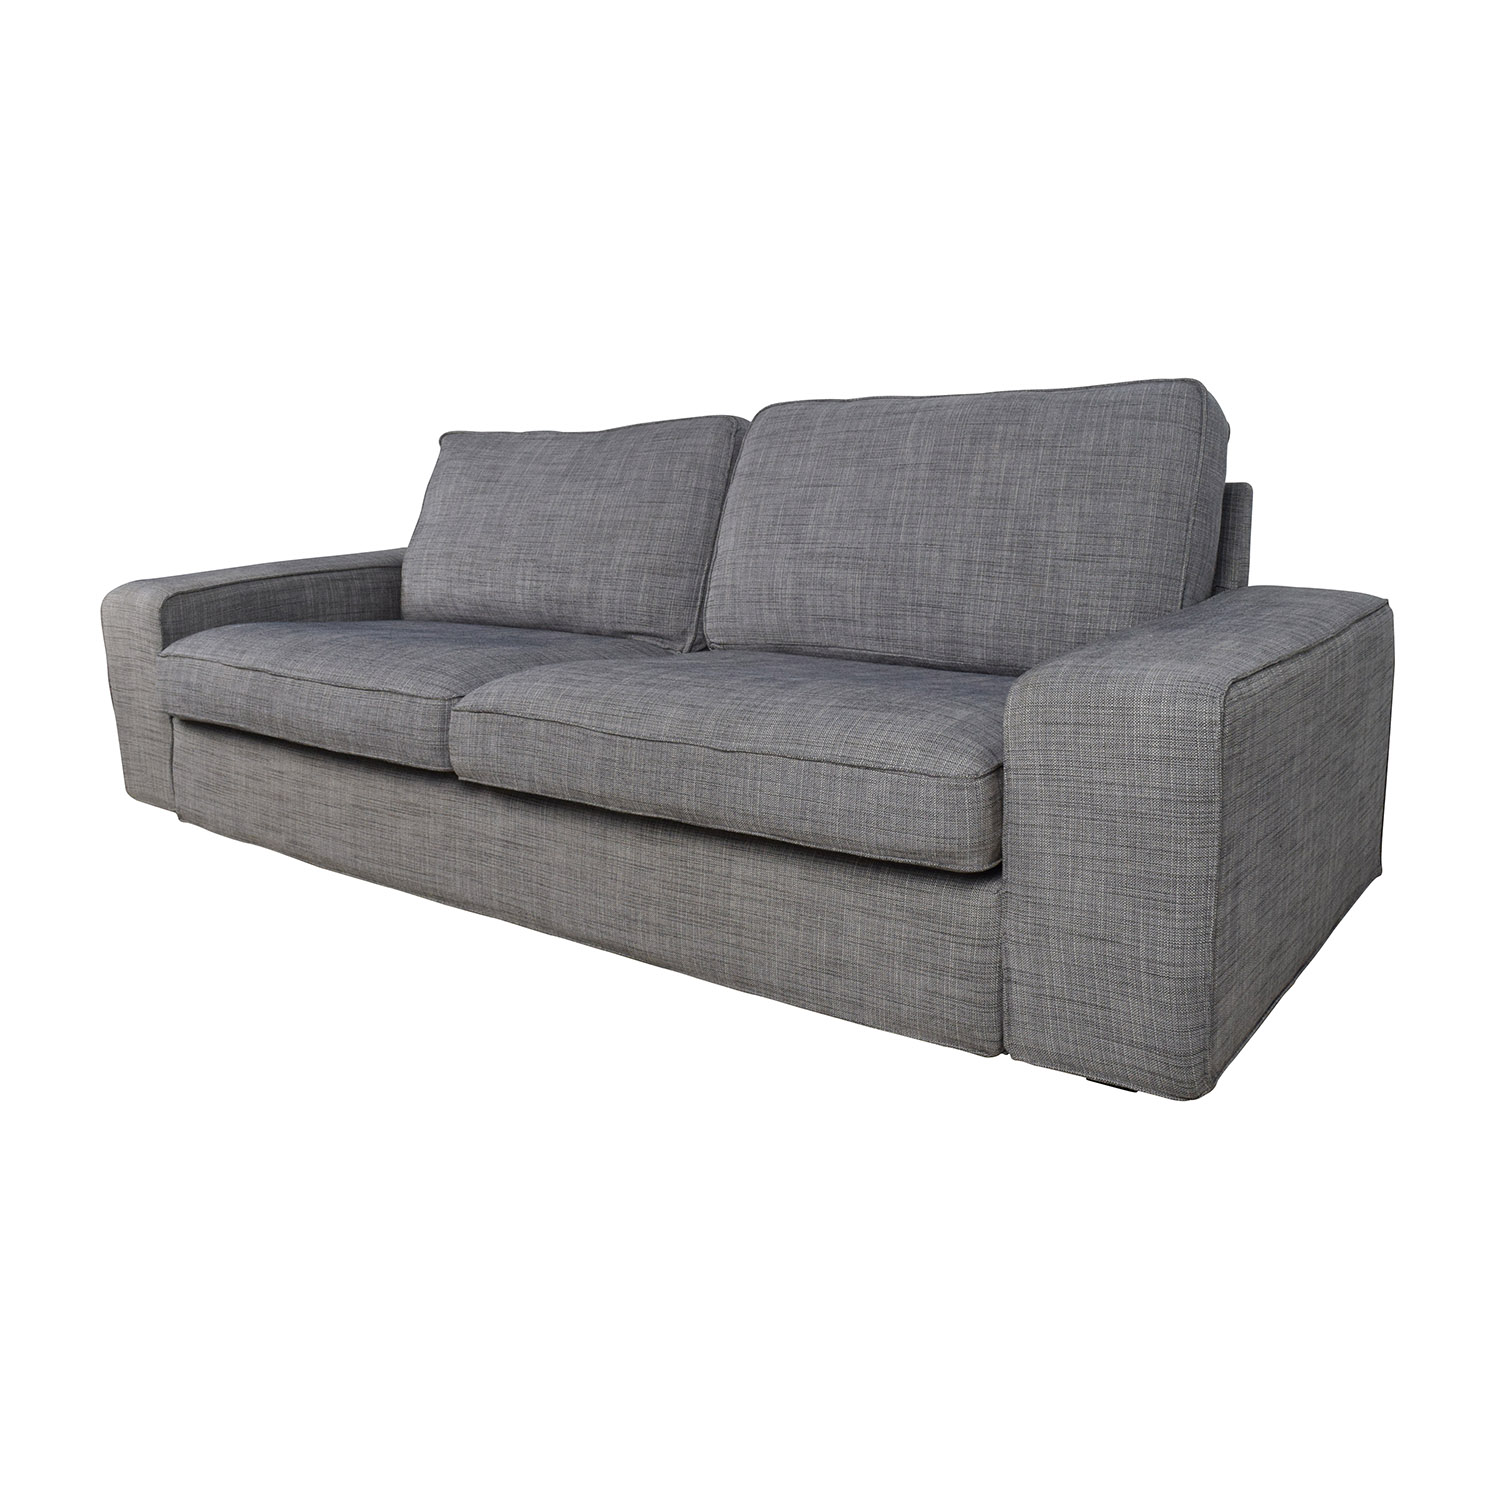 Ikea kivik sofa grau 2017 07 25 19 08 47 for Ikea sofa set